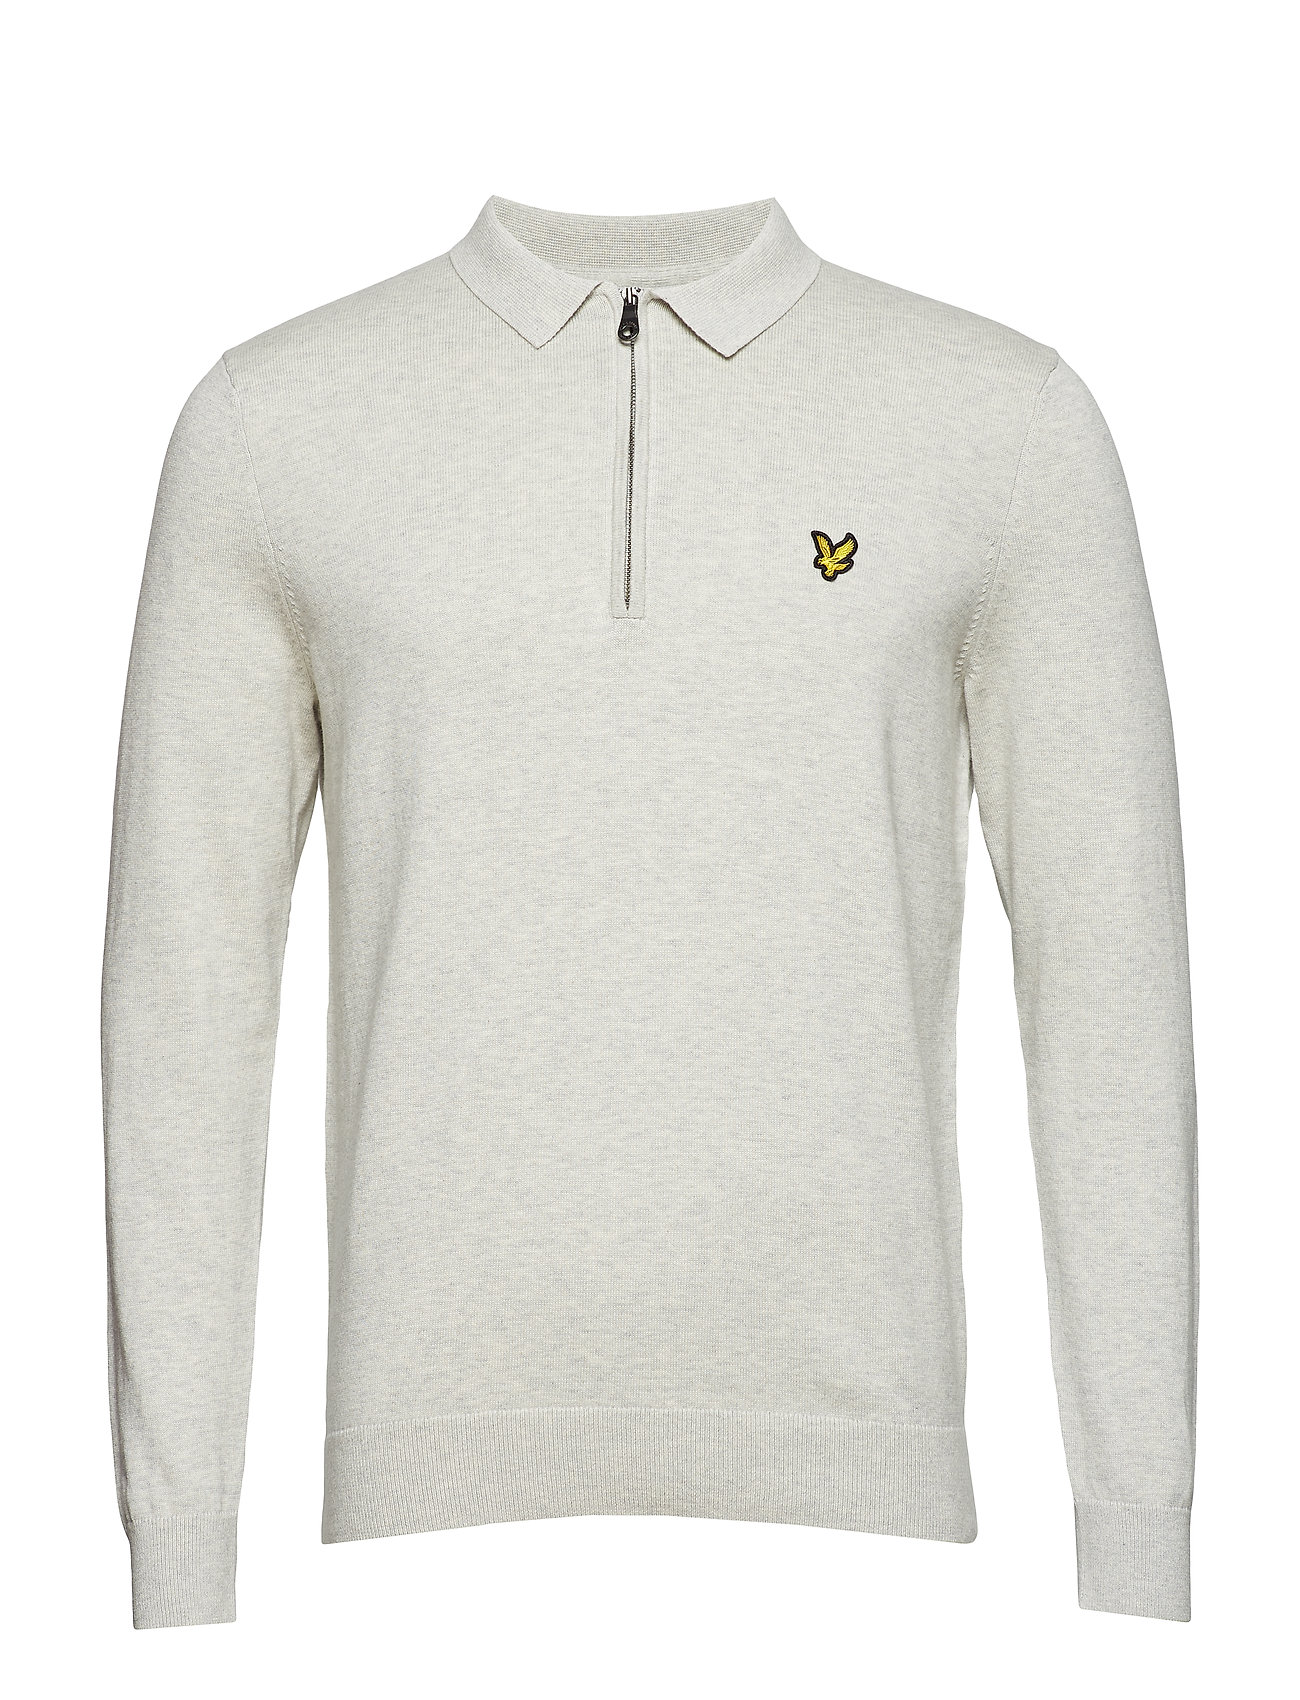 Image of Collared 1/4 Zip Sweatshirt Langærmet Trøje Creme LYLE & SCOTT (3101137185)